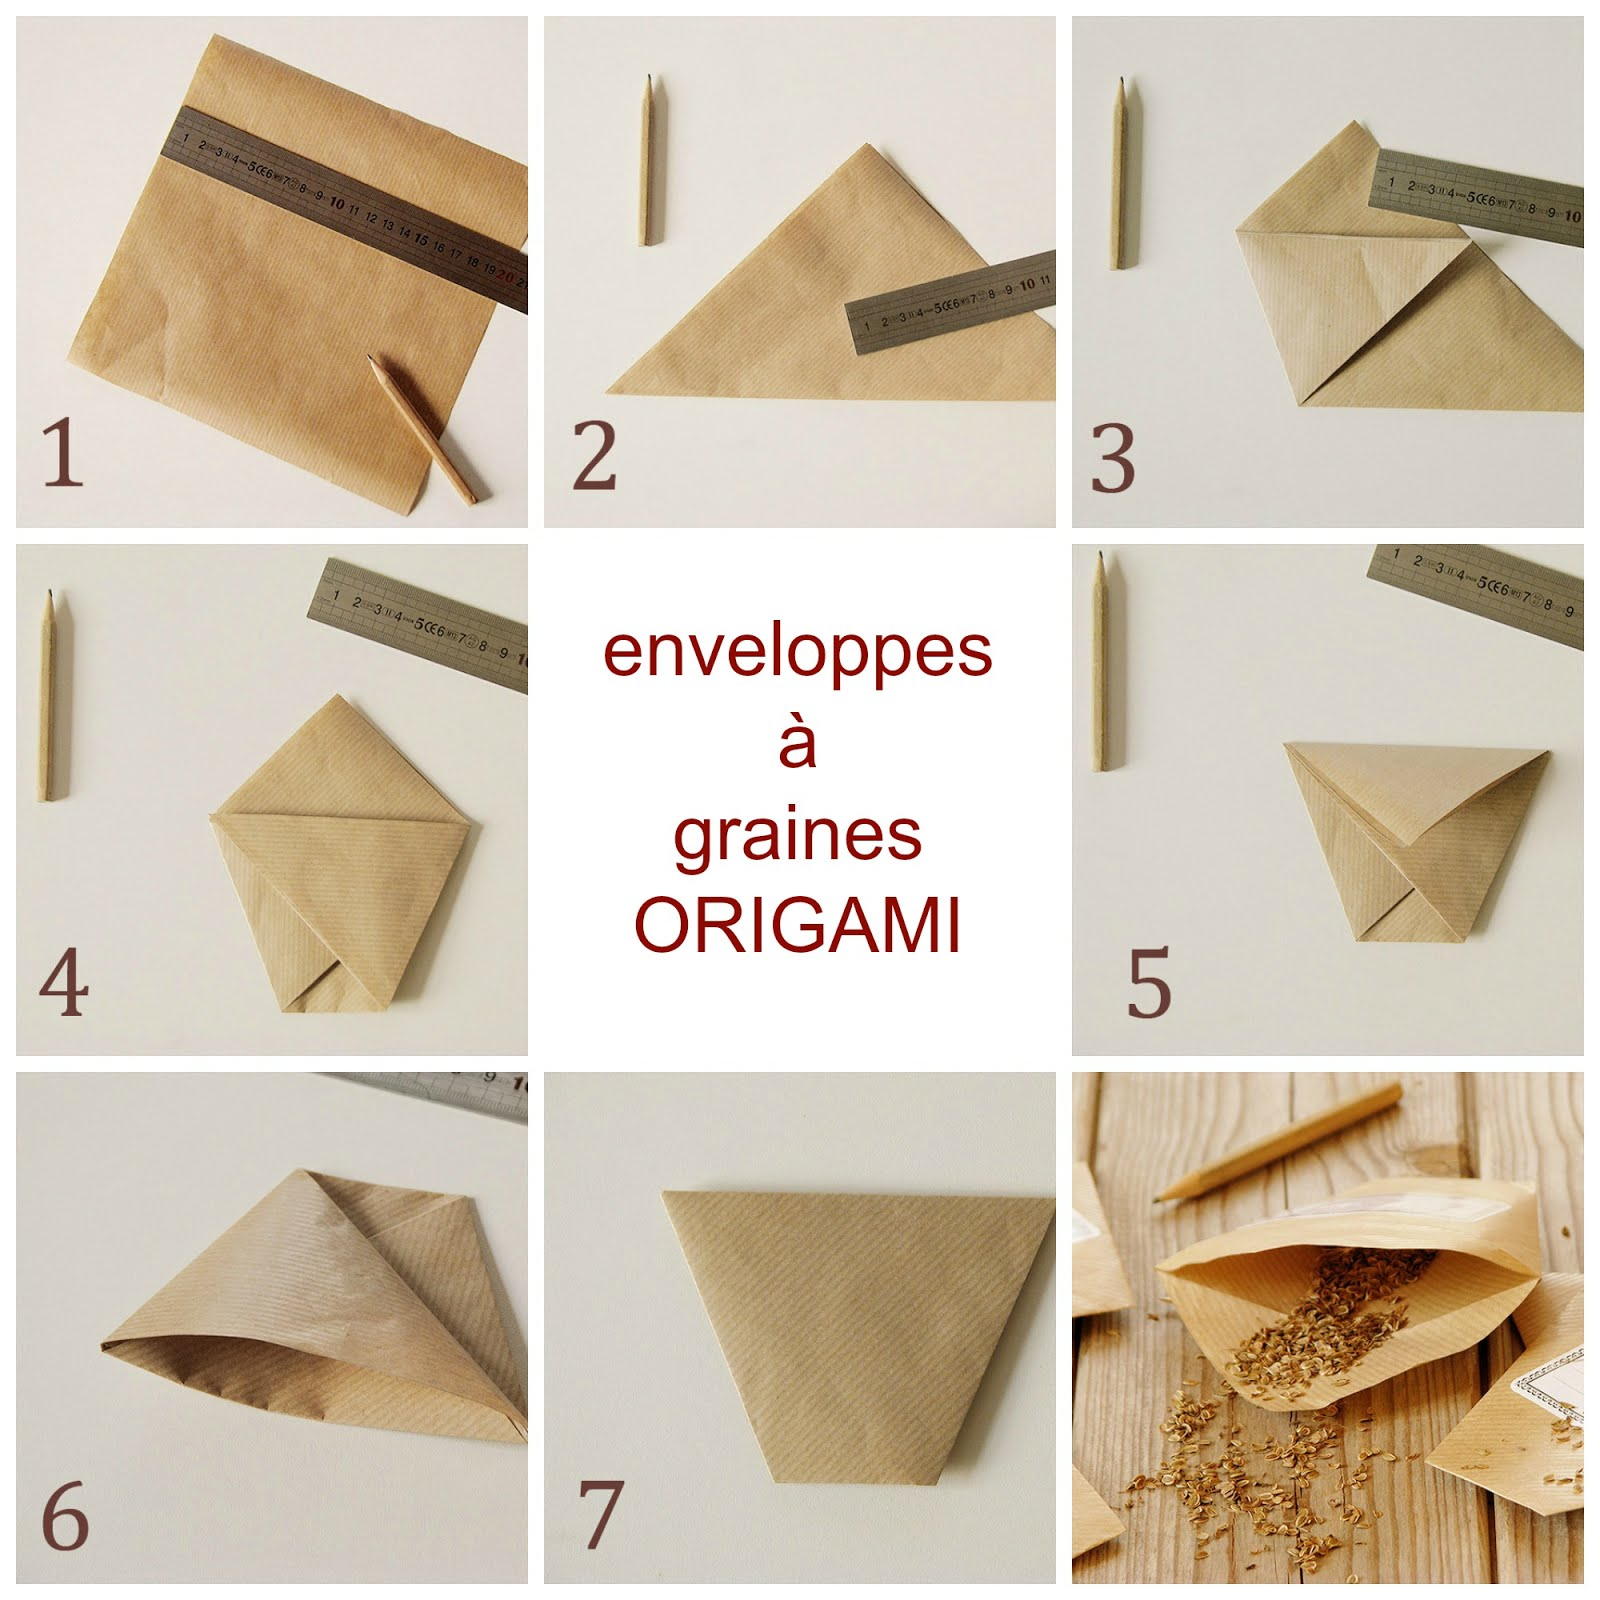 enveloppes a graines en origami recettes bio green lifestyle. Black Bedroom Furniture Sets. Home Design Ideas